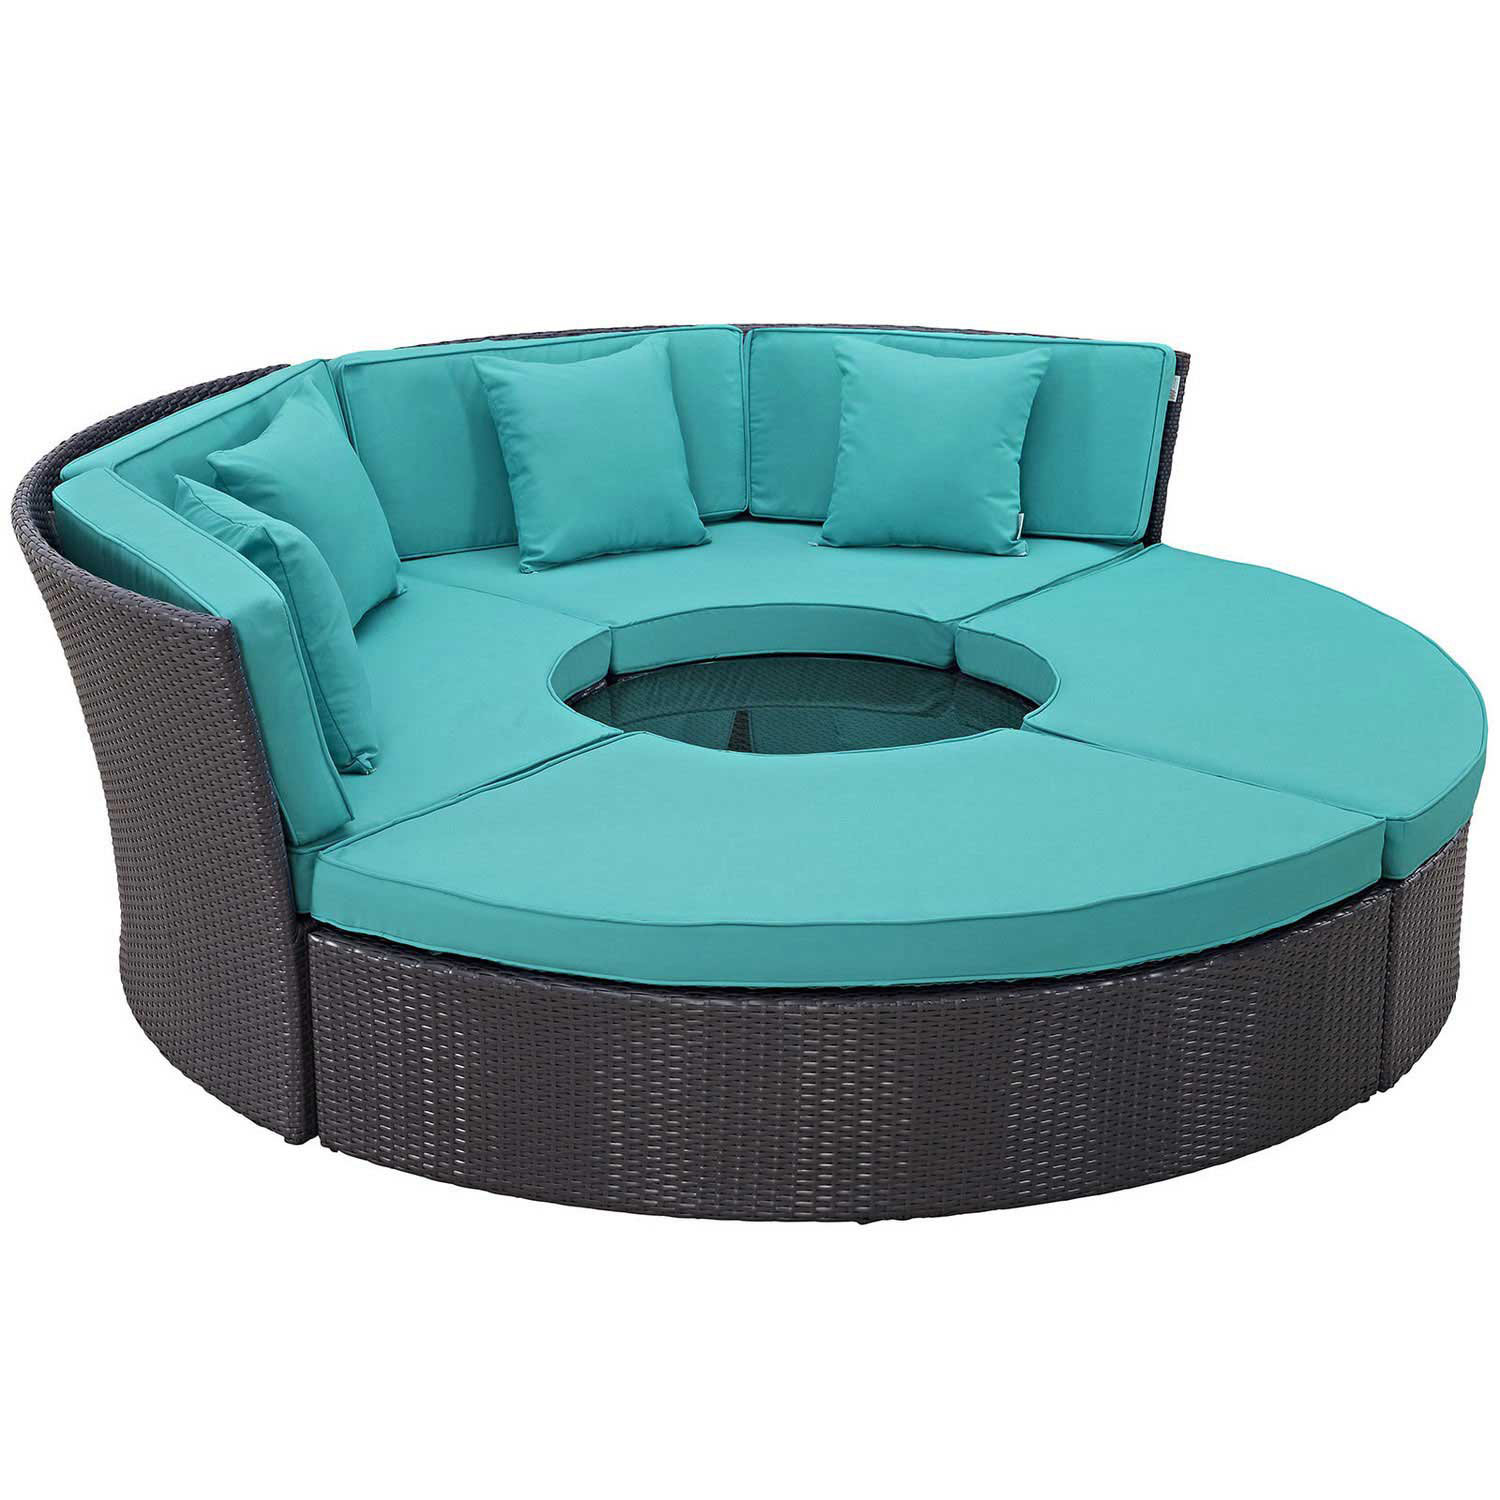 Modway Convene Circular Outdoor Patio Daybed Set - Espresso Turquoise